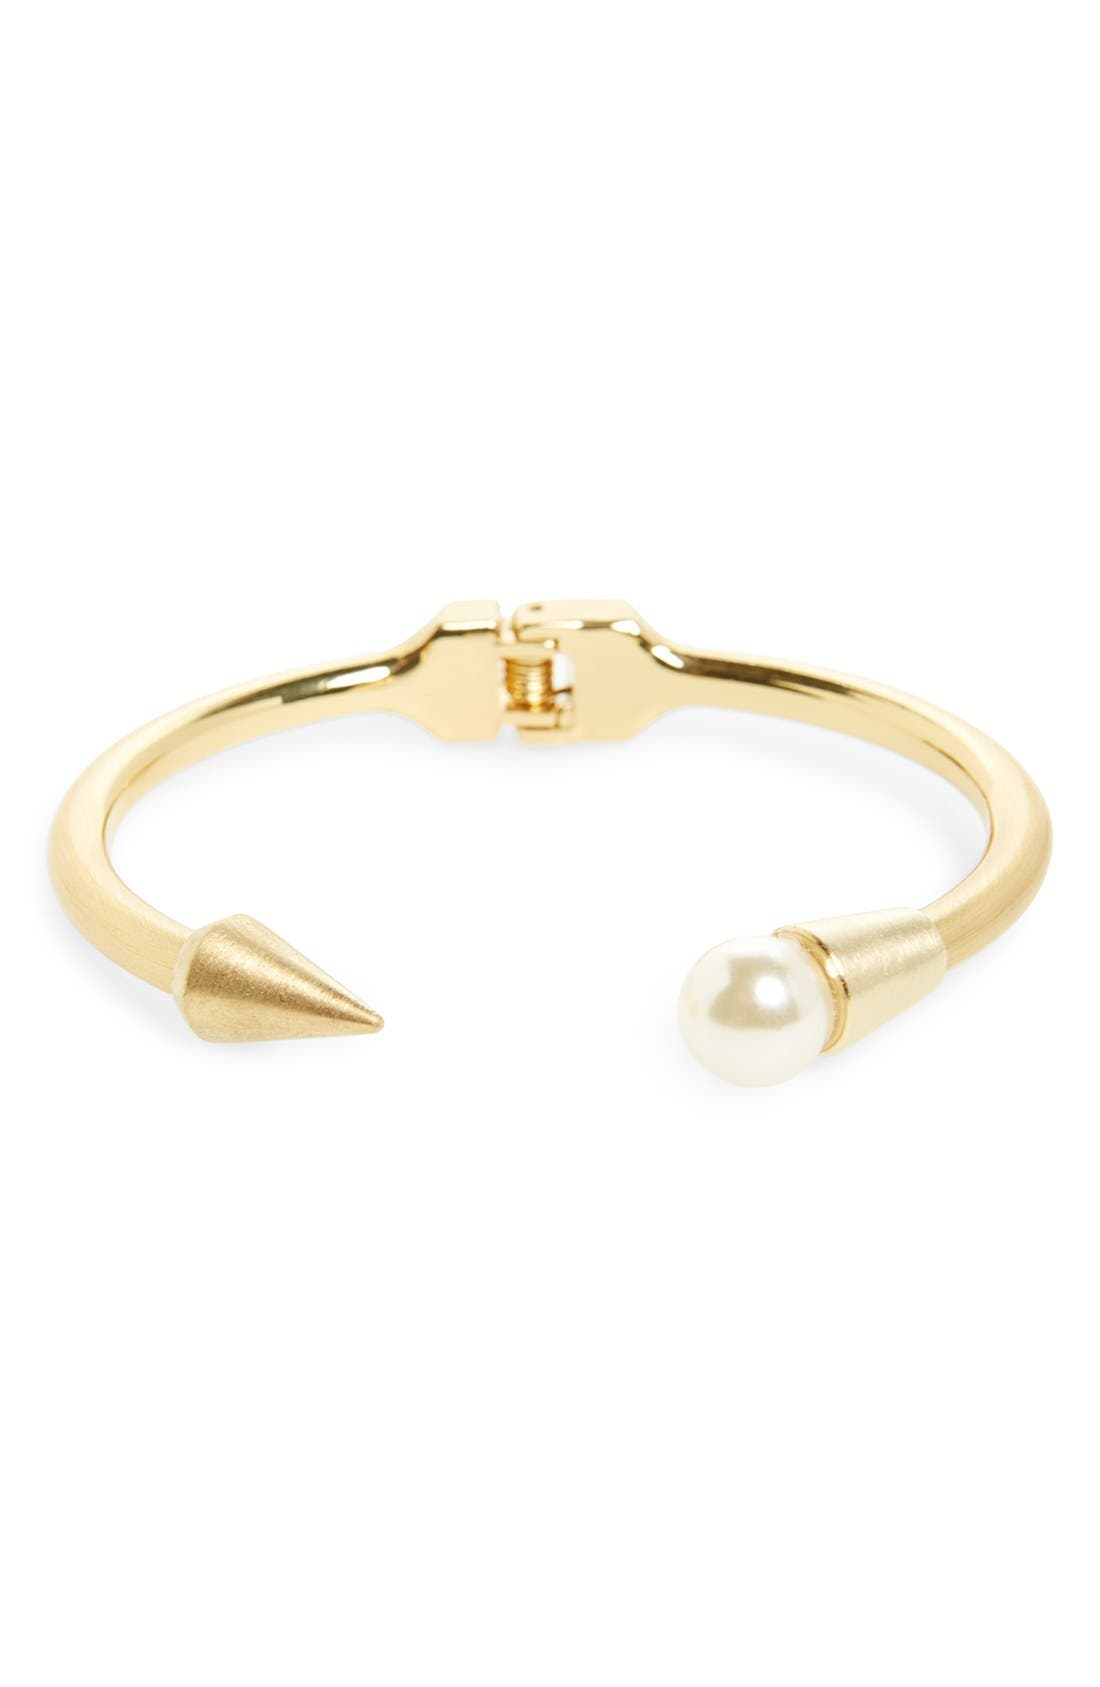 Alternate Image 1 Selected - Panacea Pearly Bead & Spike Hinged Station Cuff